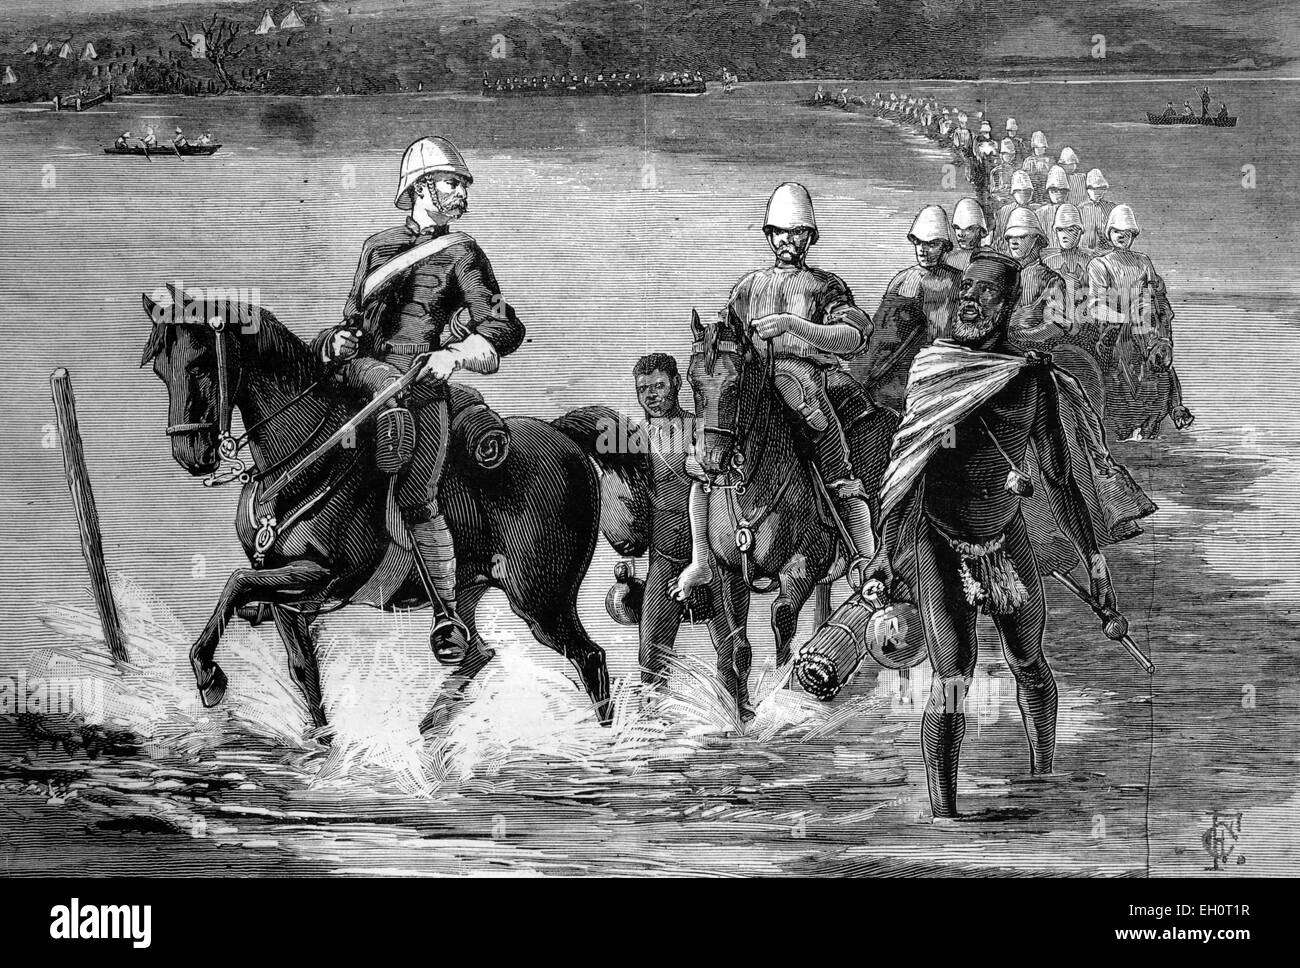 The restoration of Catewayo, the military escort crossing the Tugela River, South Africa, on their way to meet theStock Photo